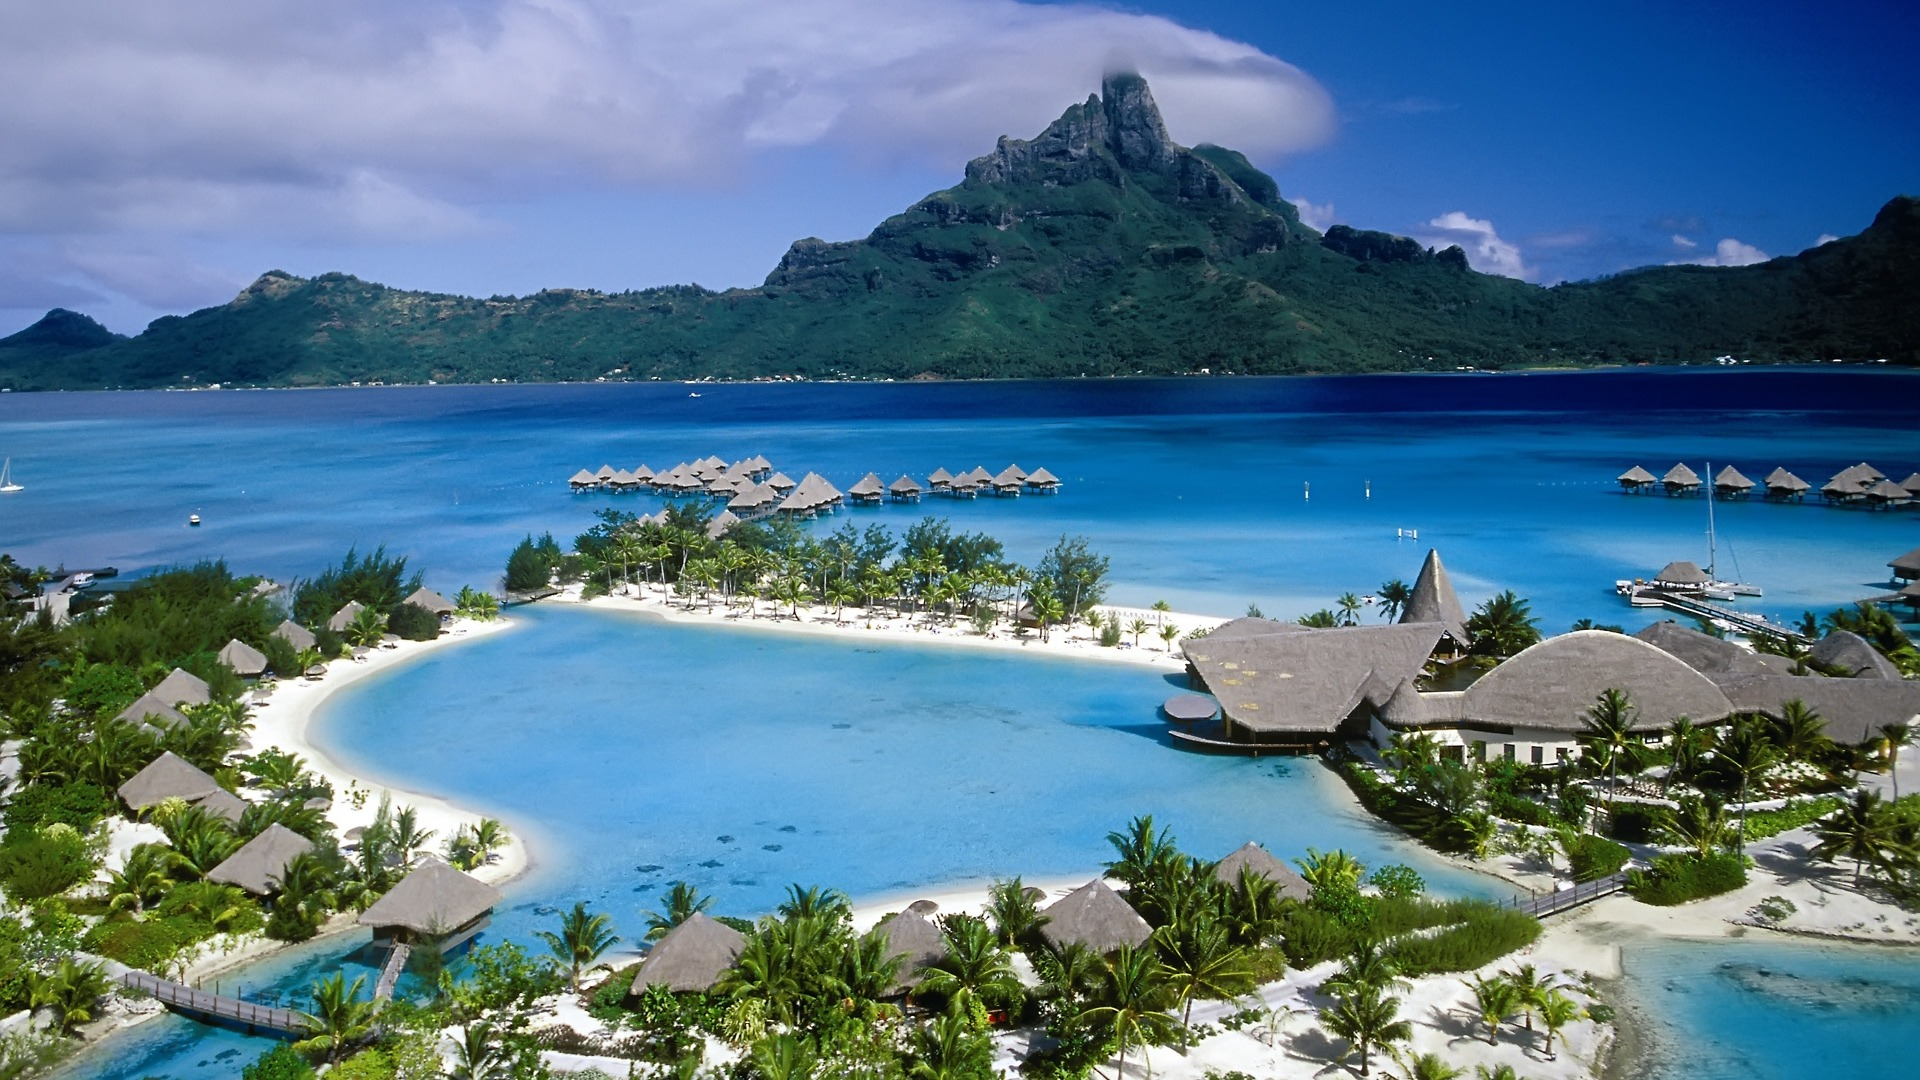 Hd wallpaper beach - Hd Tropical Island Beach Paradise Wallpapers And Backgrounds